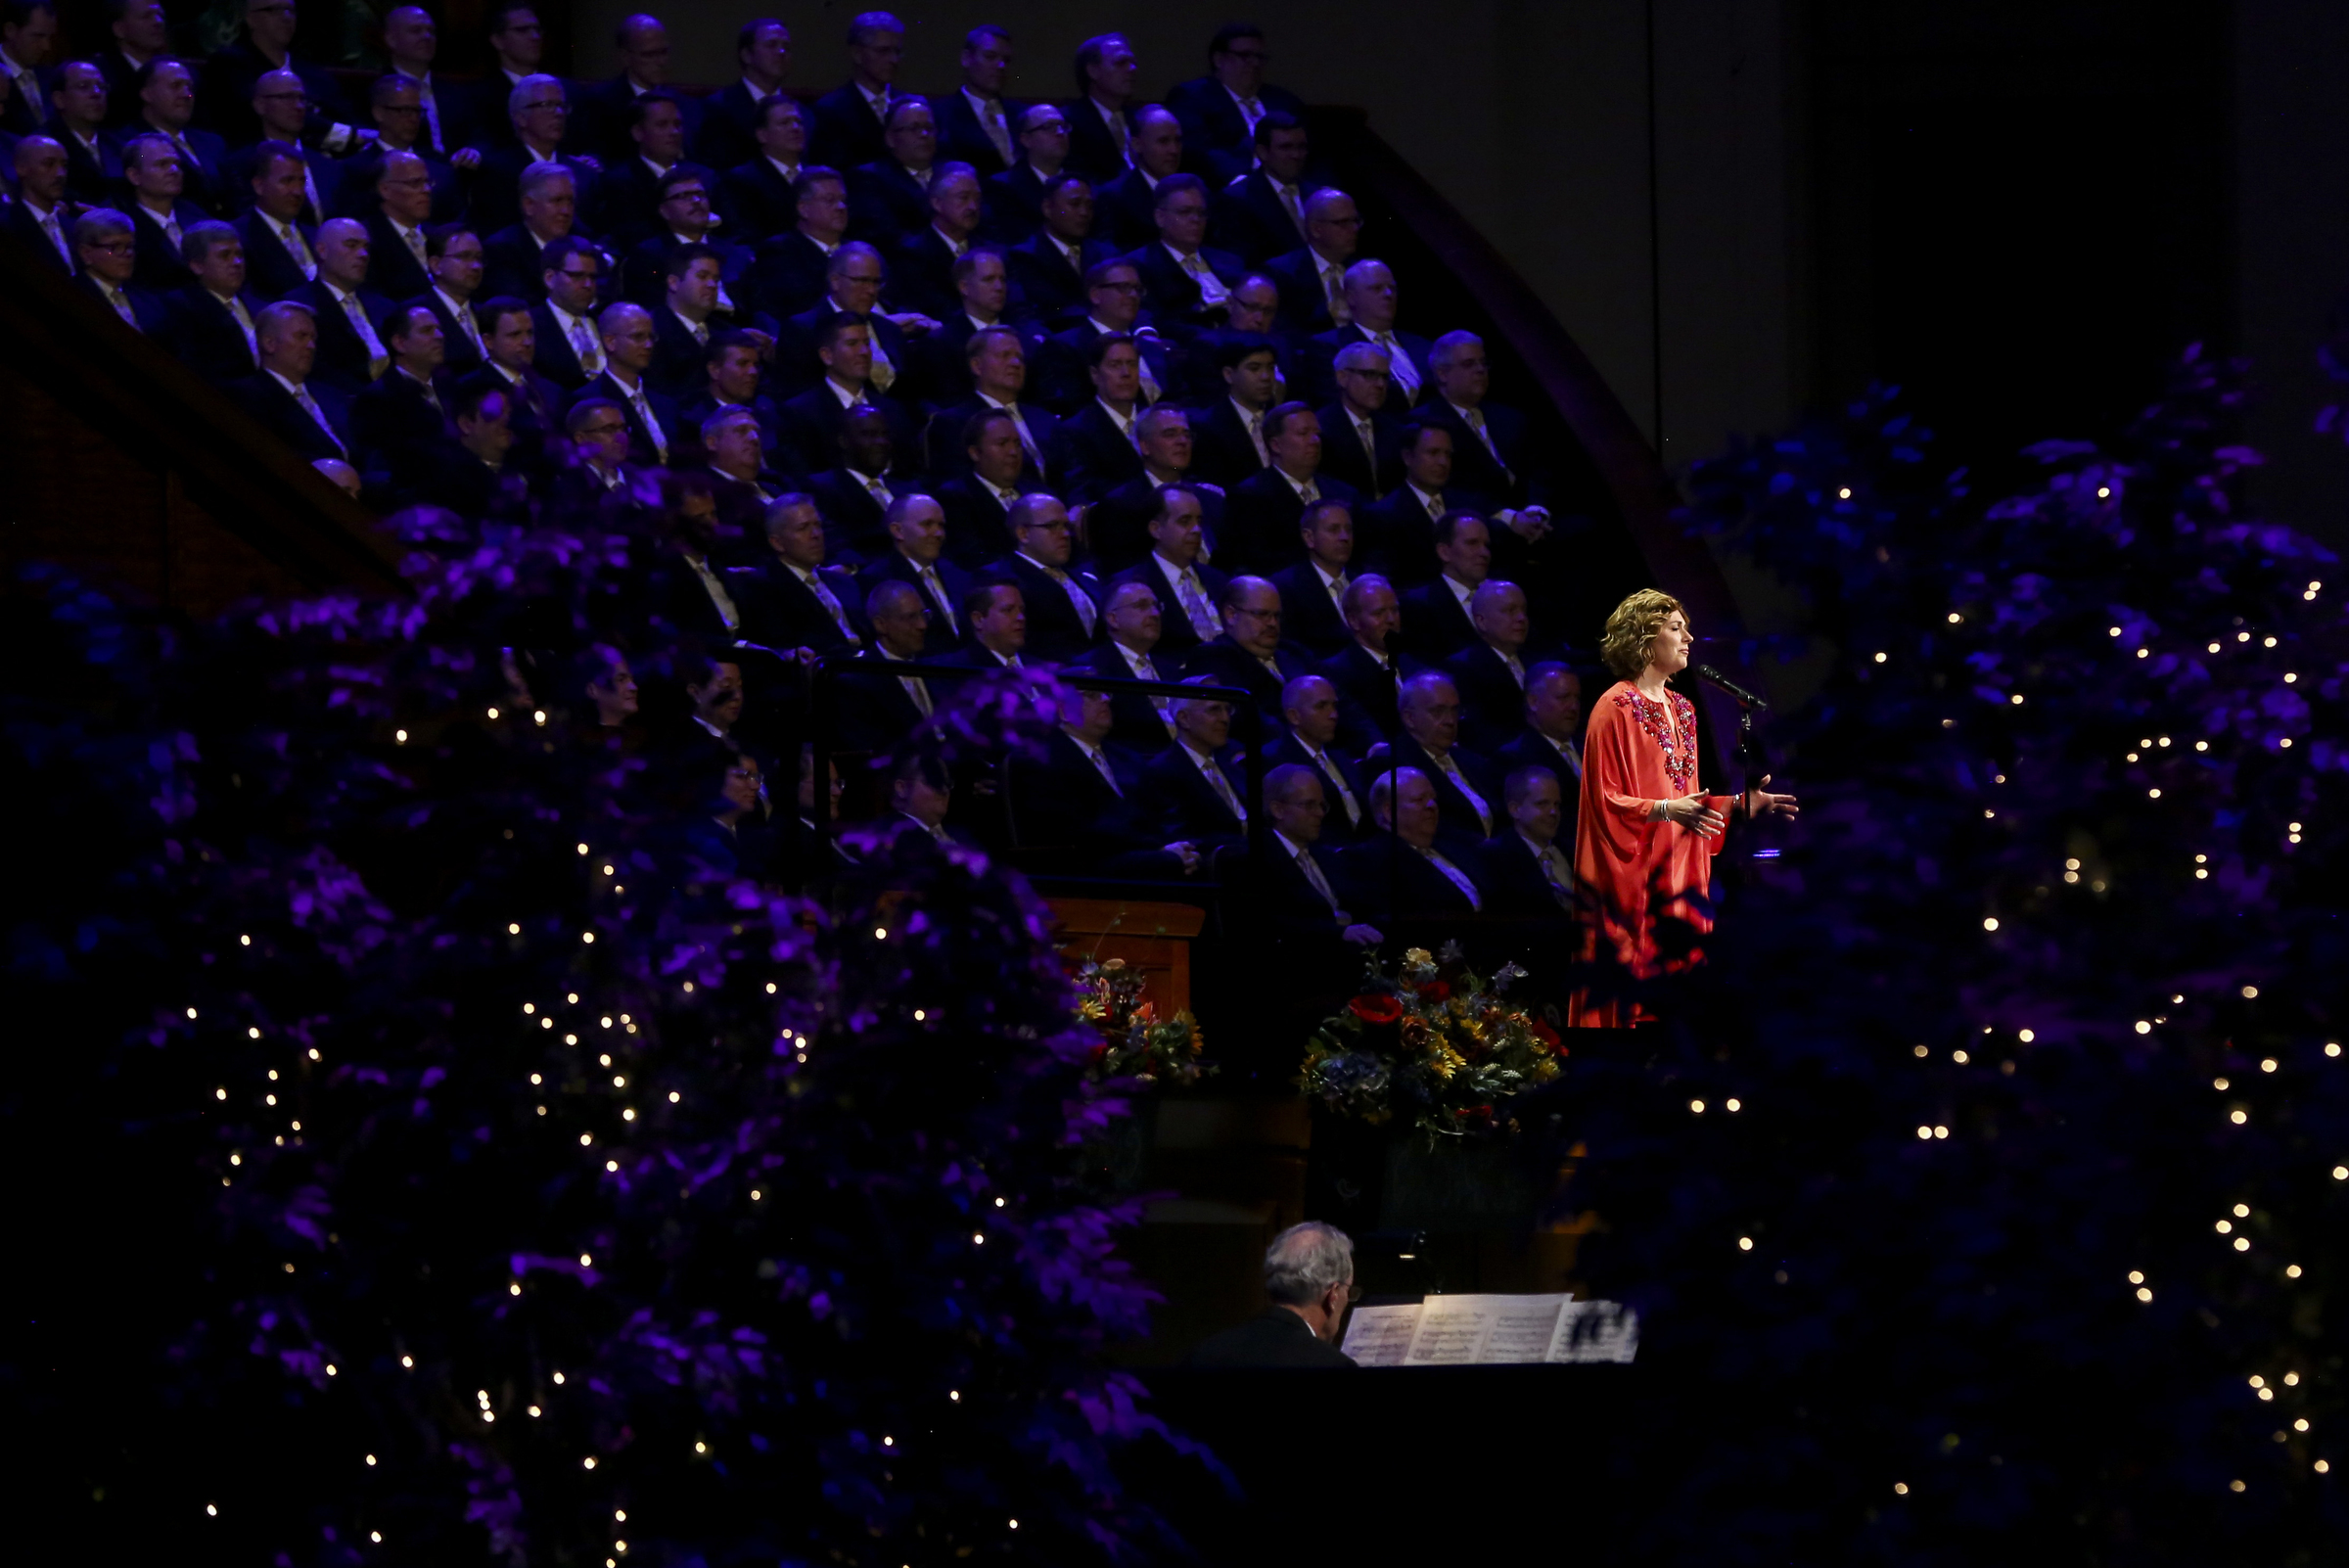 Special guest Sissel sings with the Tabernacle Choir and Orchestra at Temple Square during the Pioneer Day concert at the Conference Center in Salt Lake City on Friday, July 19, 2019.